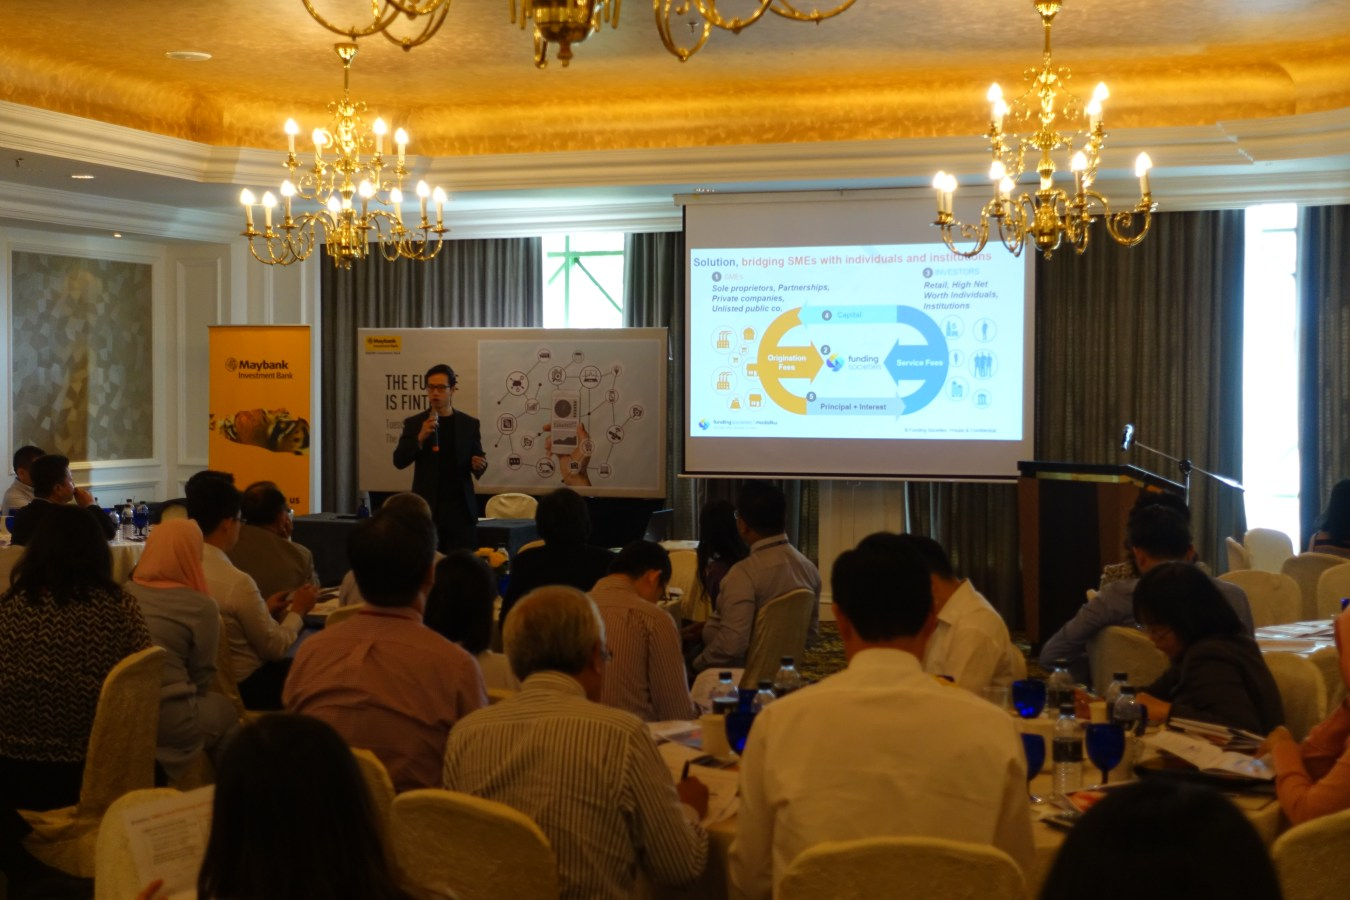 """Funding Societies Malaysia at Maybank's """"The Future is Fintech"""" Event"""